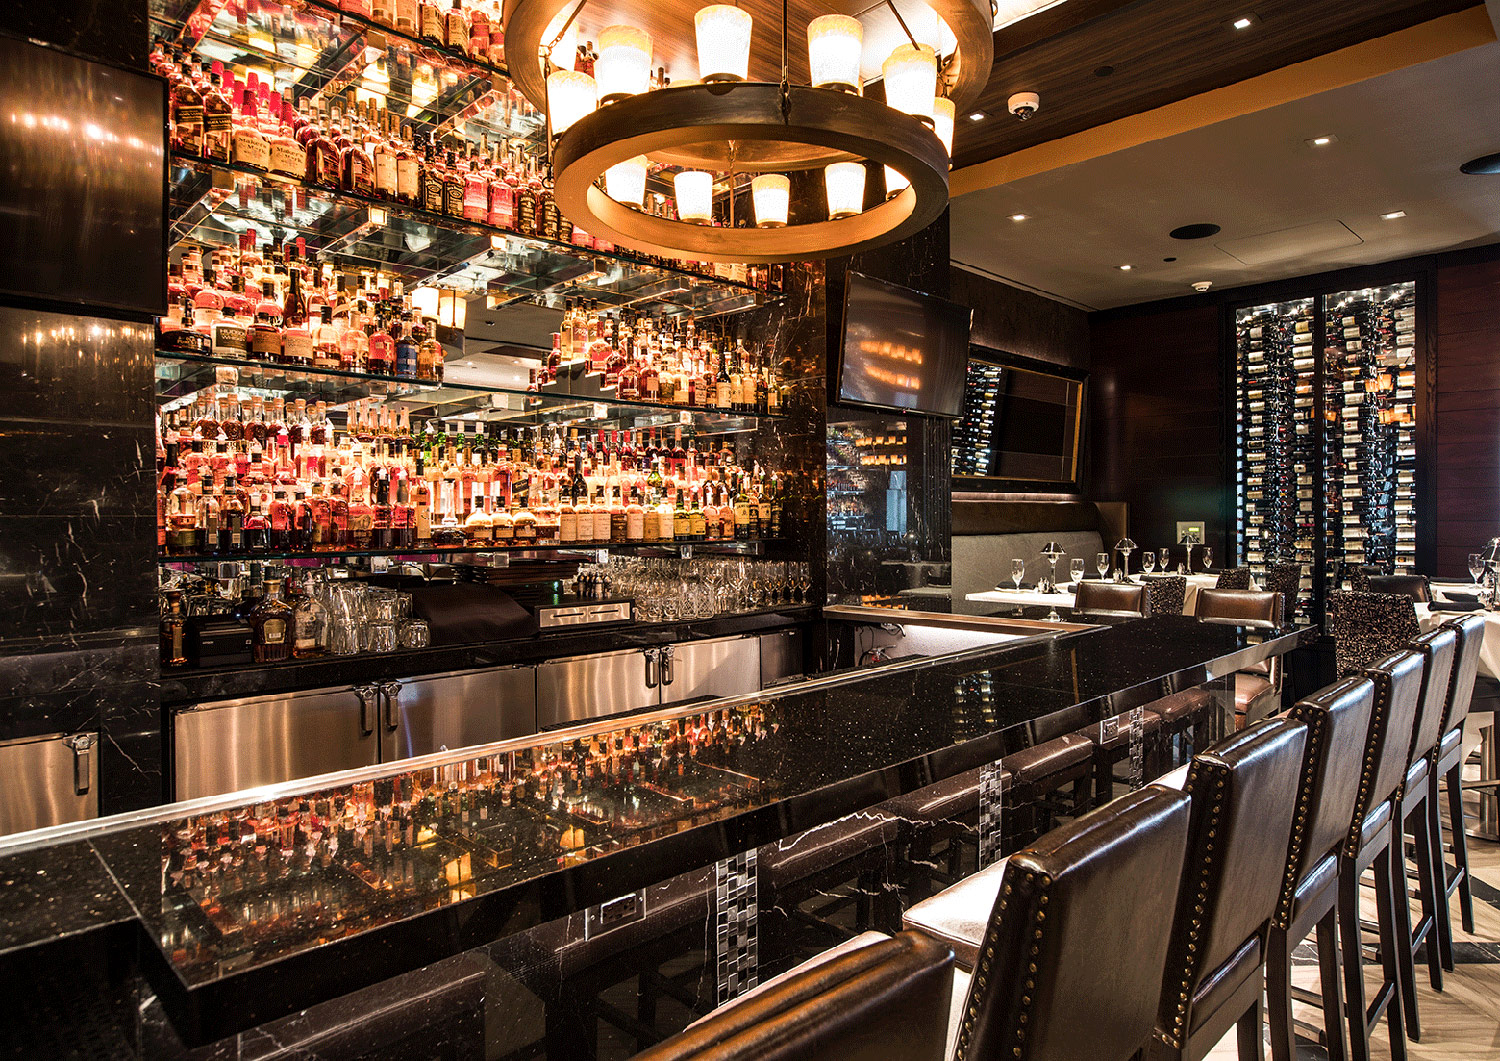 Restaurant Hospitality Interior Design Mastro's Houston Post Oak Bar